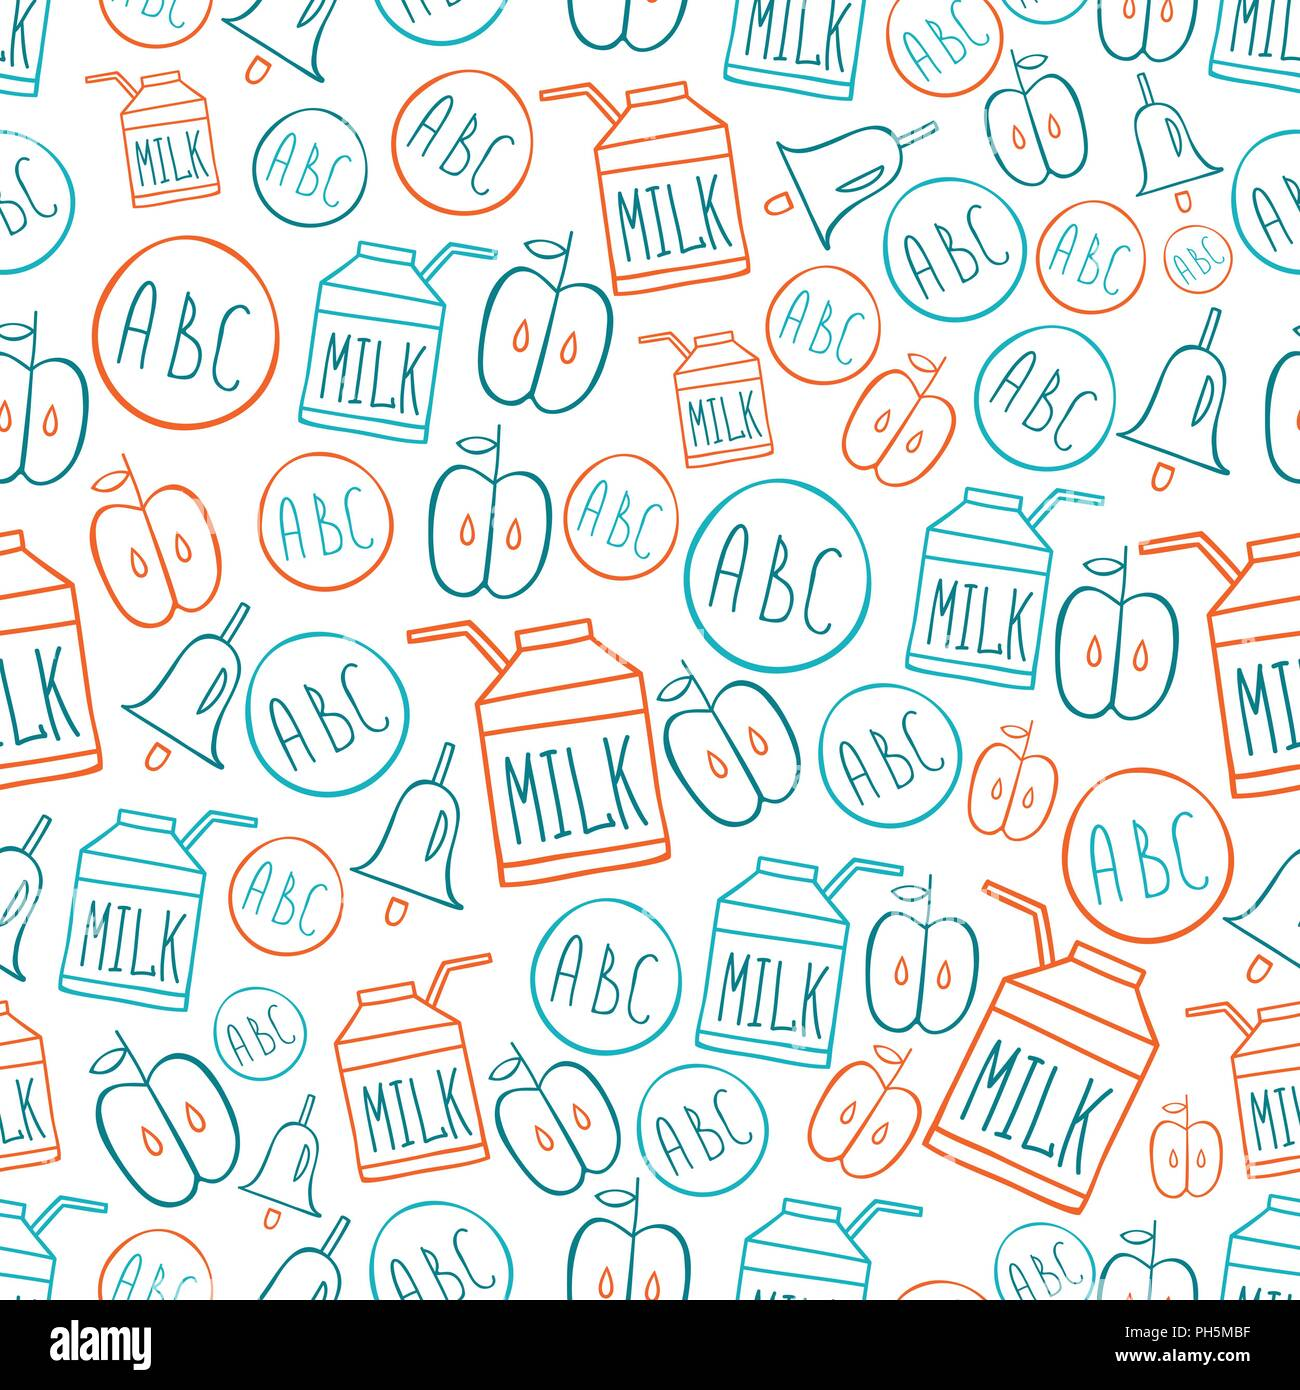 Back To School Seamless Pattern With Symbols Alphabet Milk Pack Bell